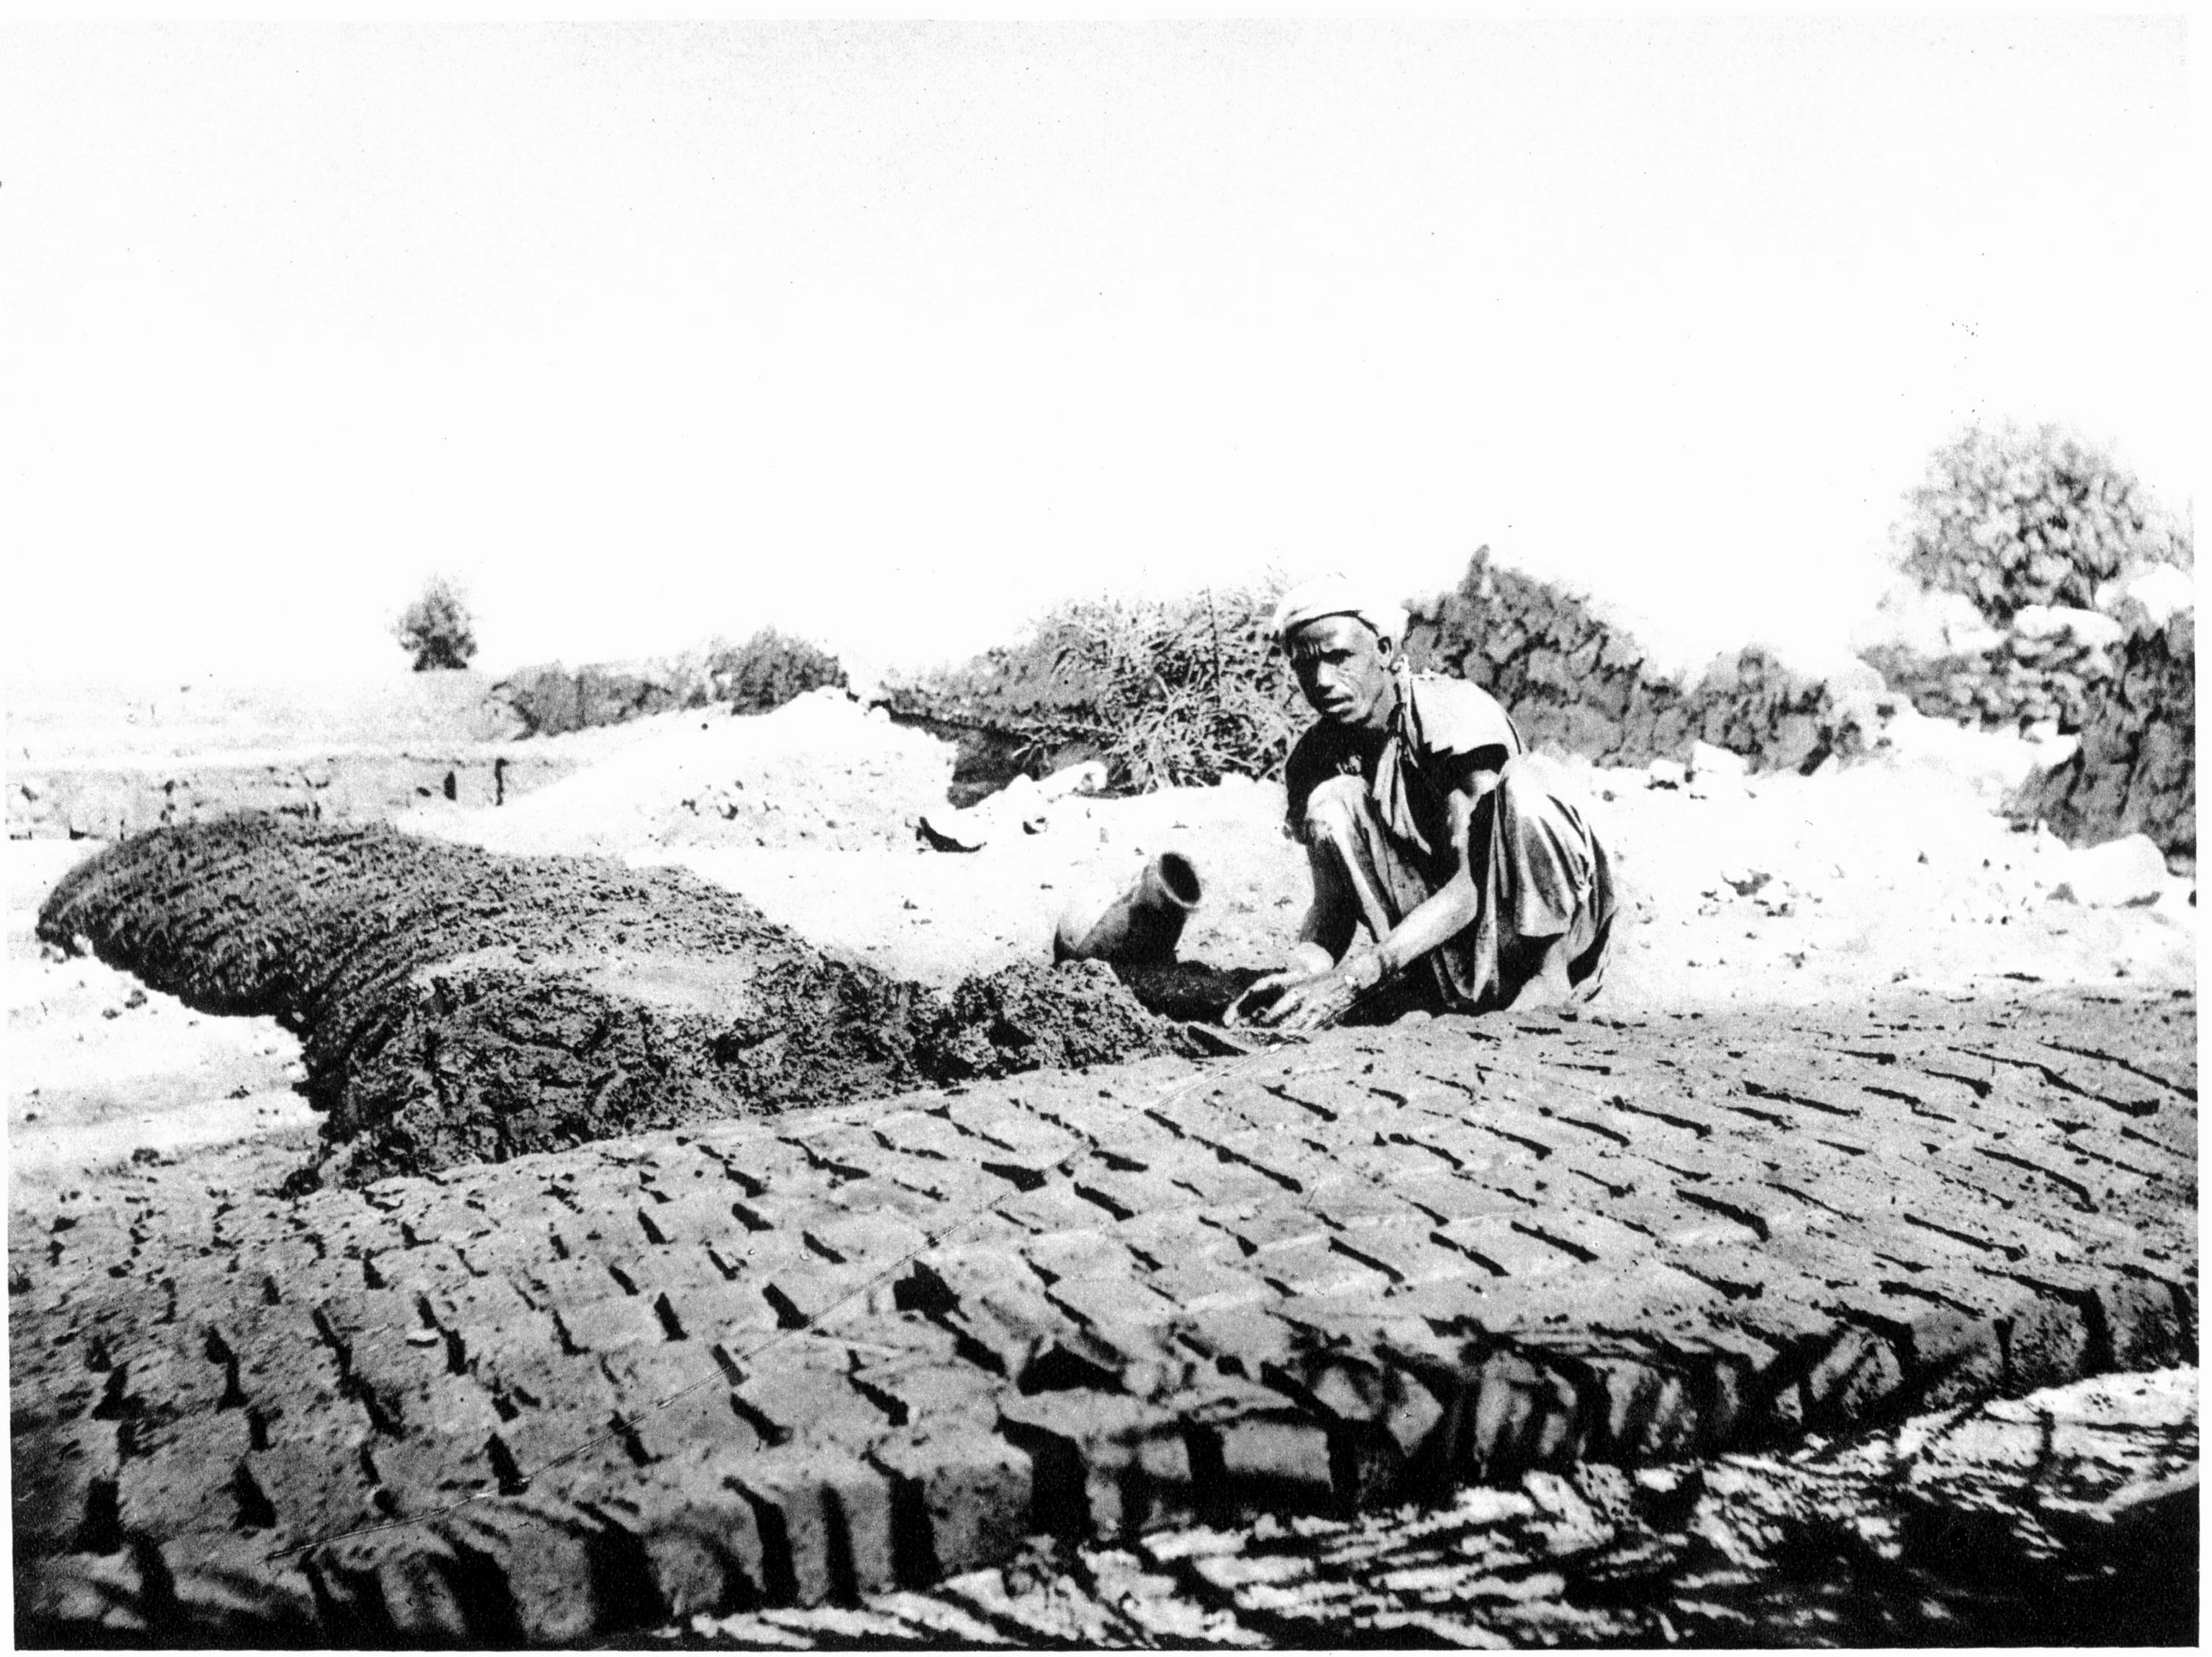 brick making borchardt 1929